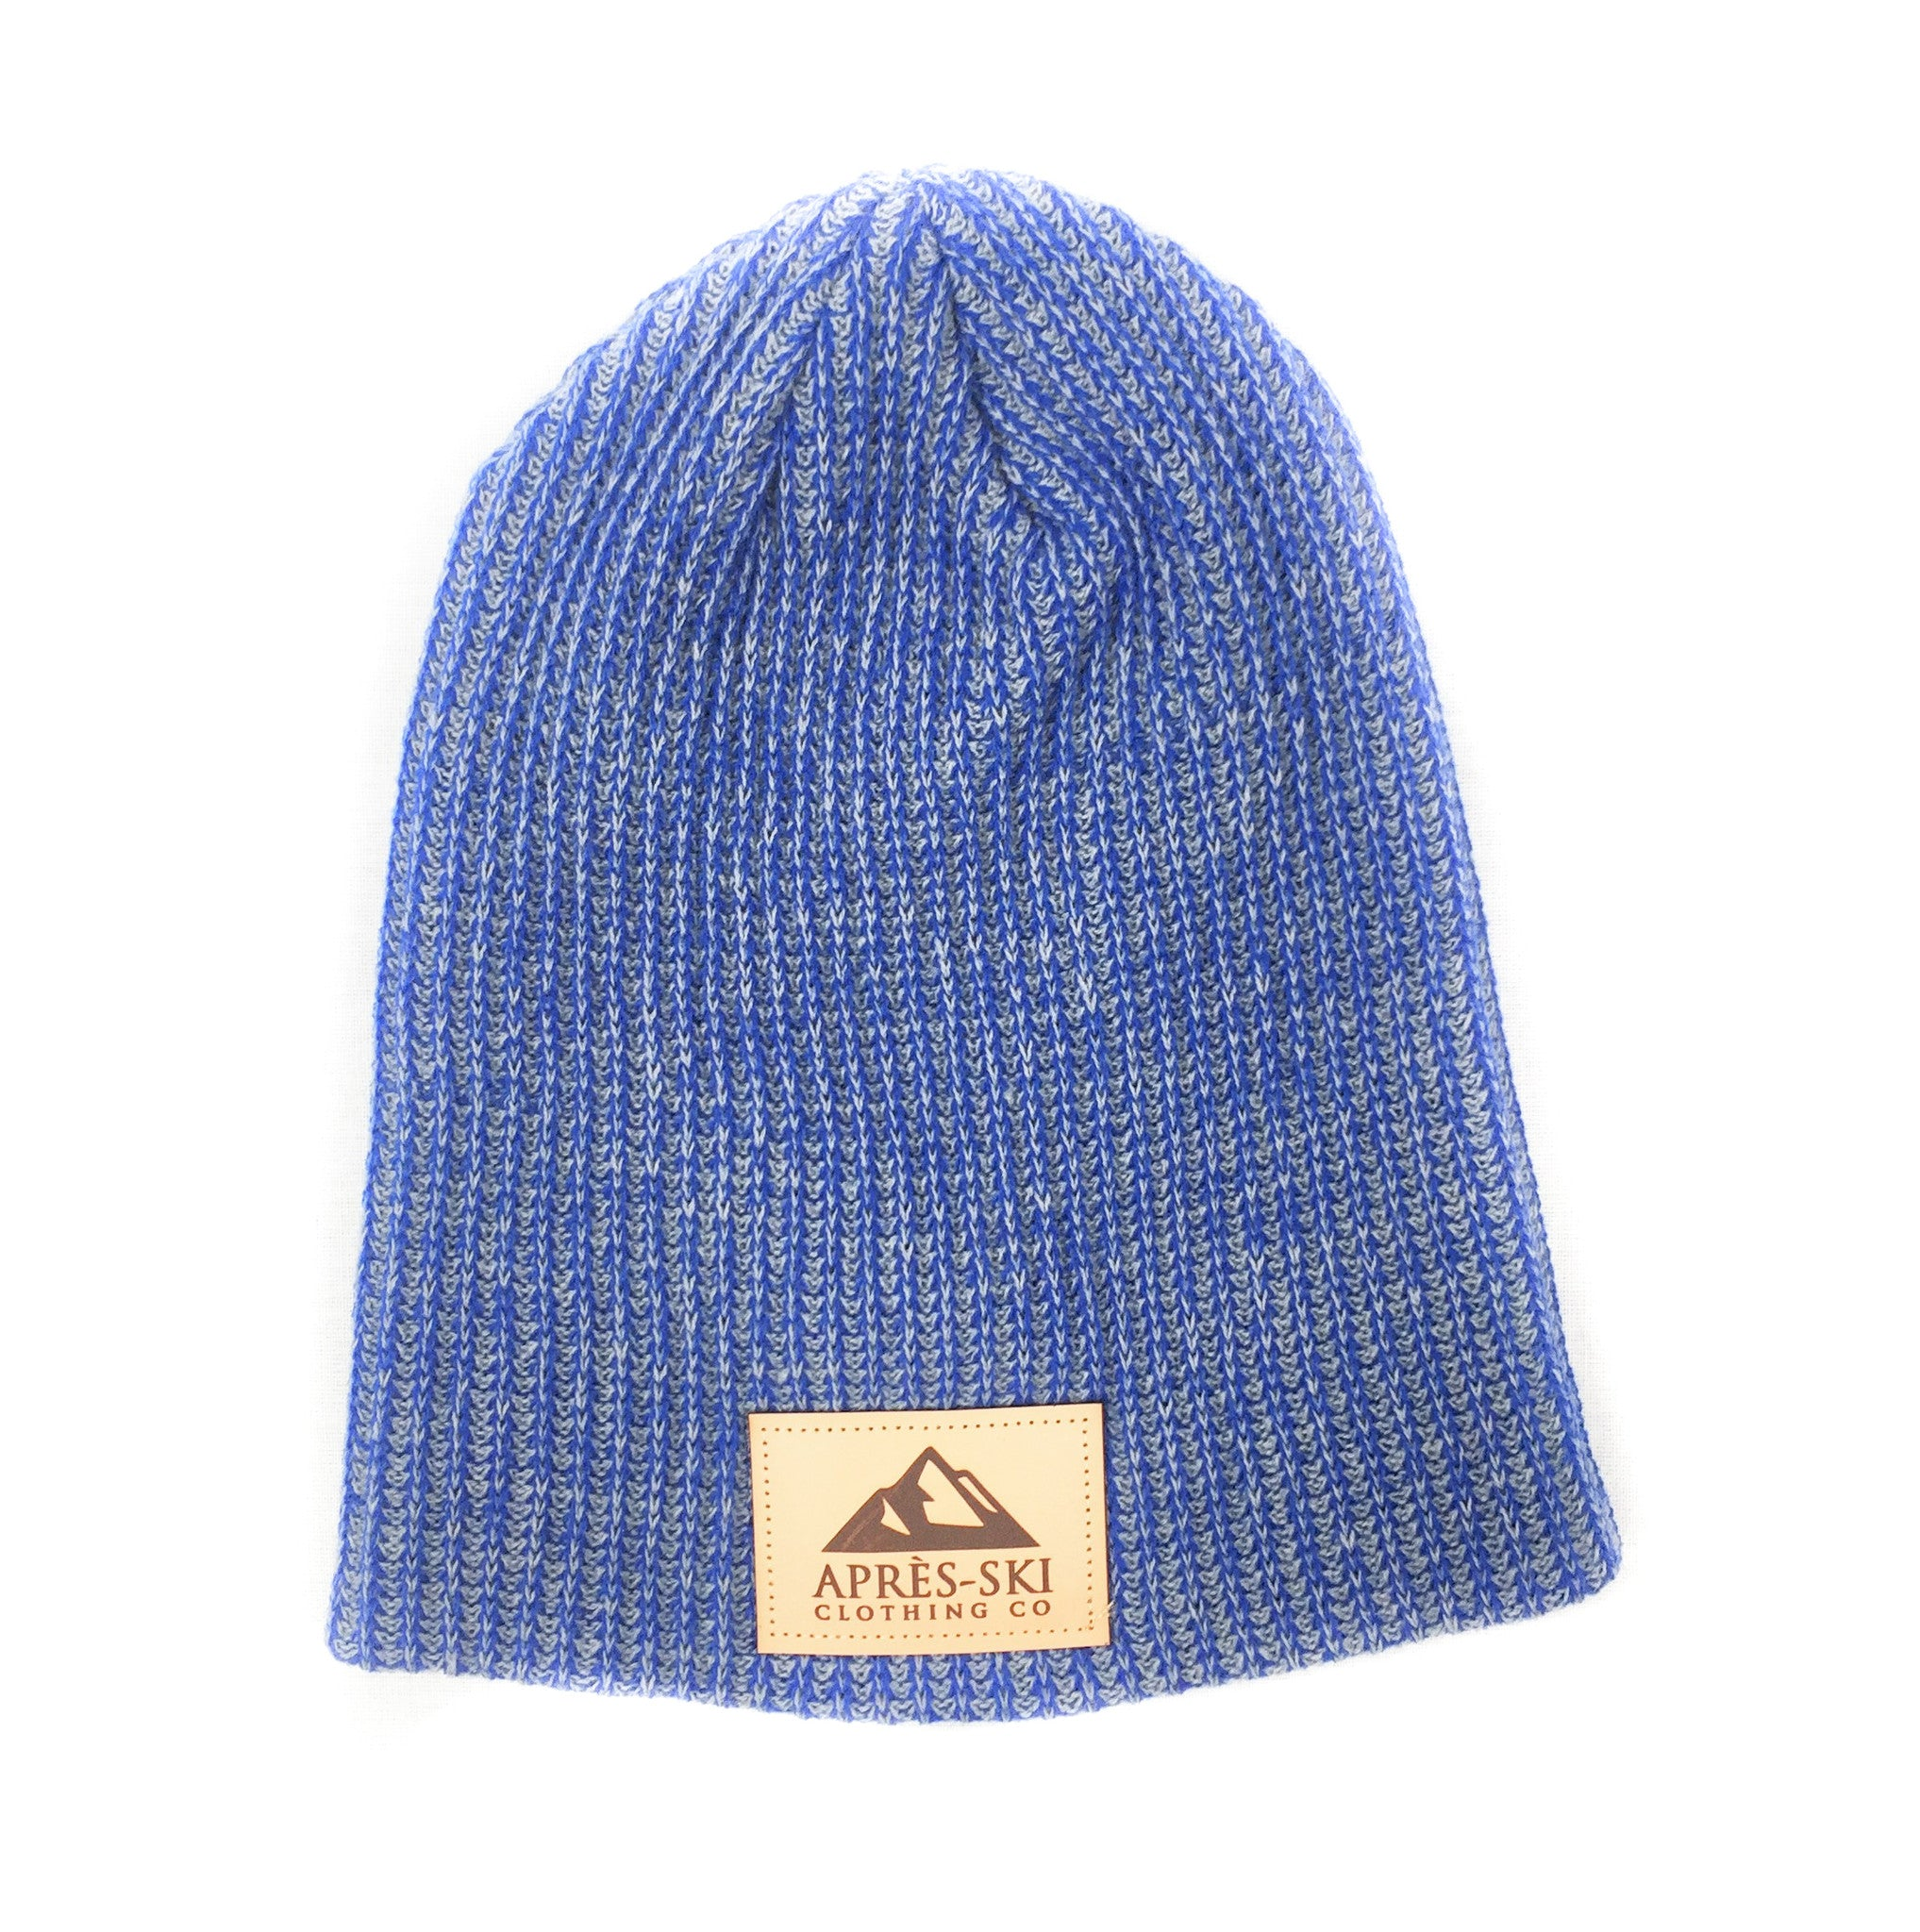 86971a65cef58 Big Mountain Heathered Royal Beanie - Apres Ski Clothing Co